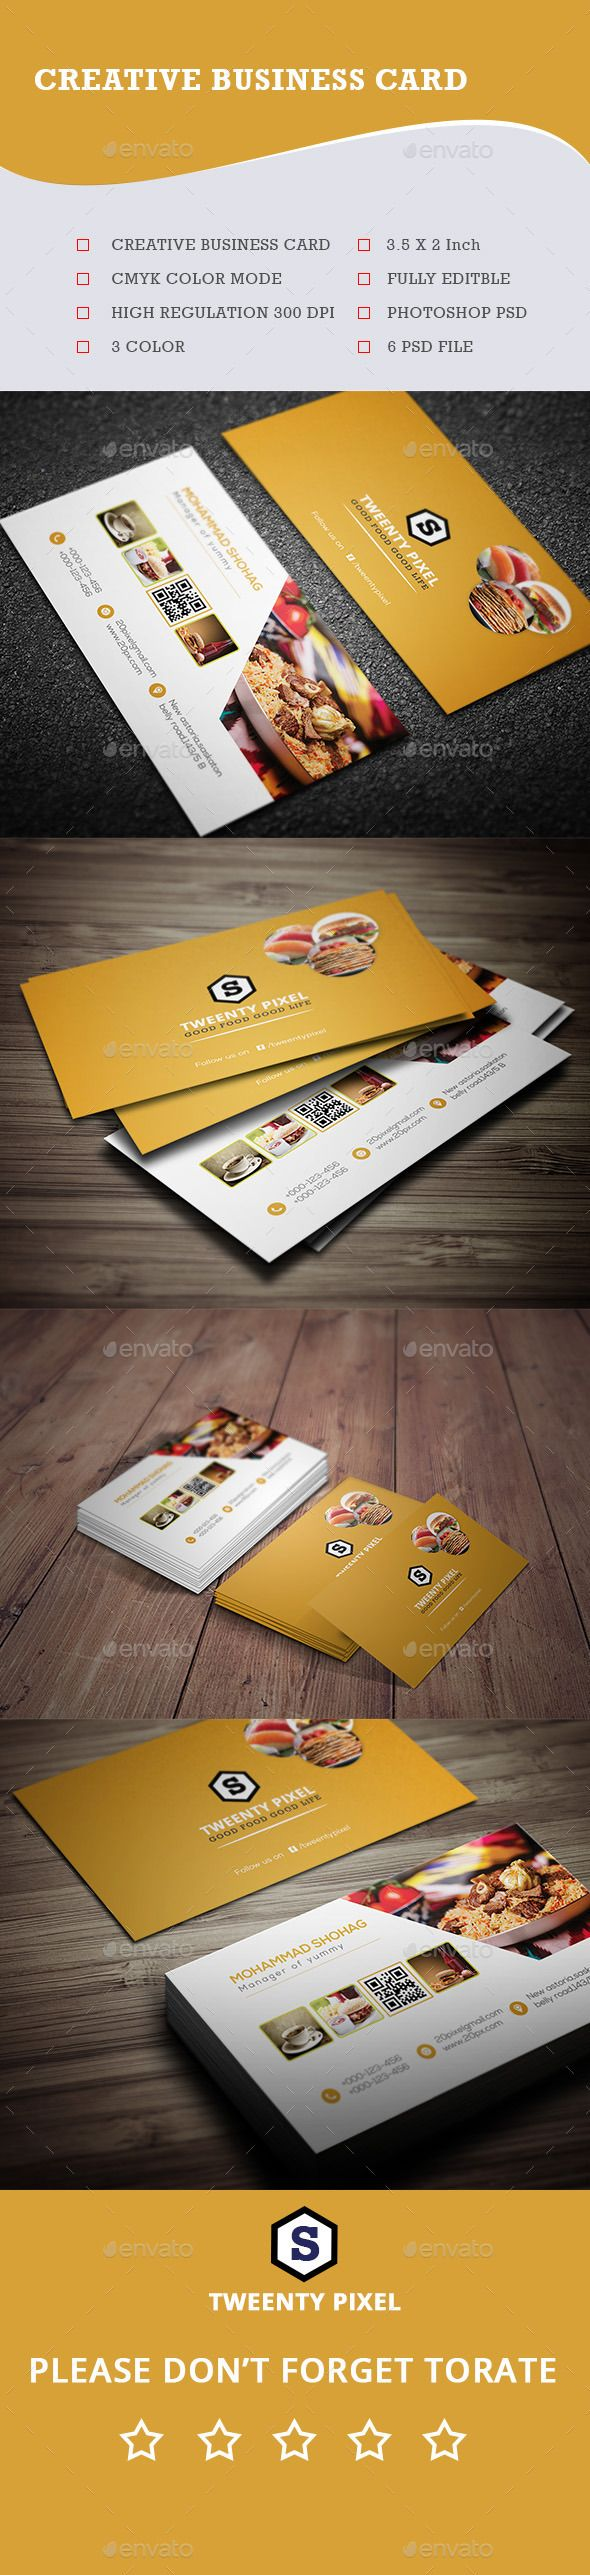 Restaurant Business Card Template PSD #design Download: http://graphicriver.net/item/restaurant-business-card-/14156224?ref=ksioks